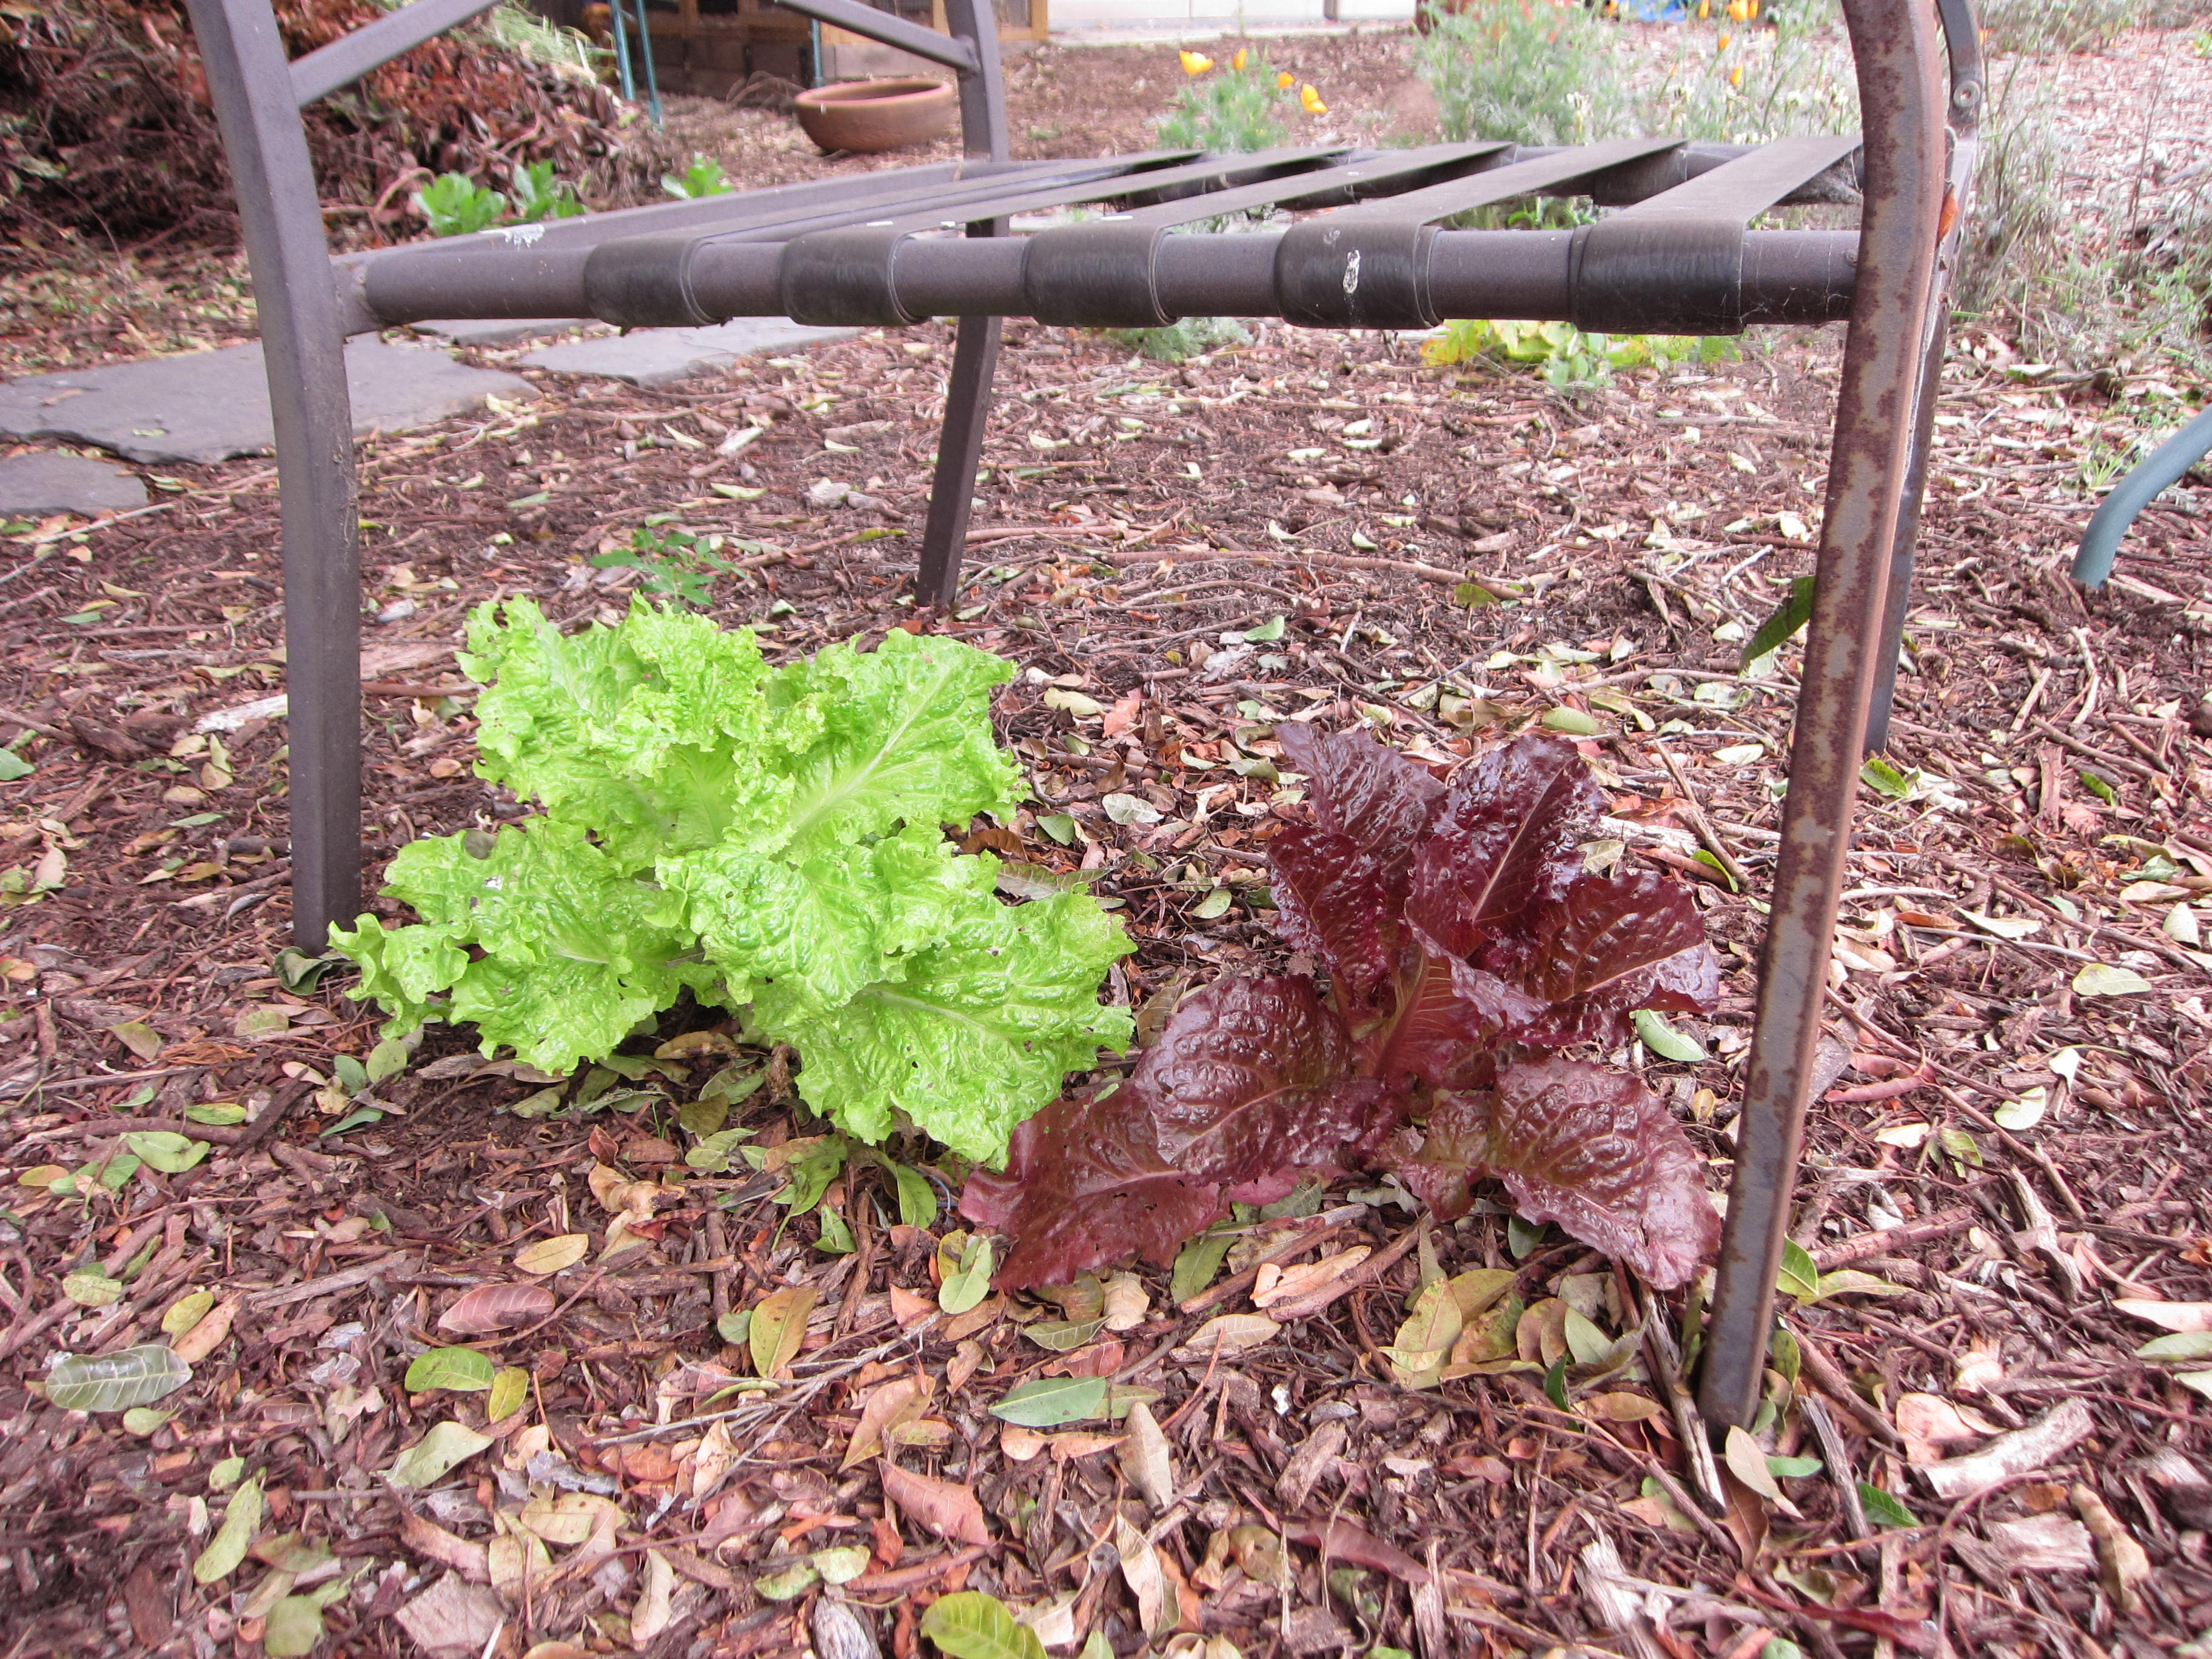 Lettuce volunteers under a lawn chair. We're feeding a few leaves to the chickens each day from here